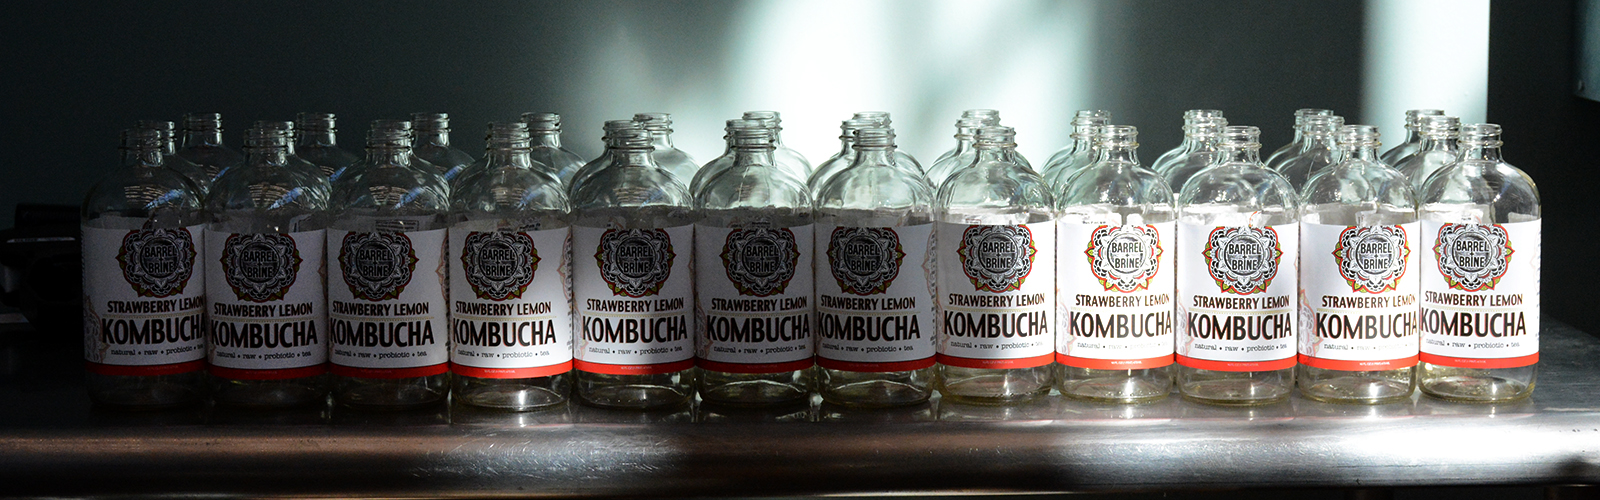 Bottles waiting to be filled with strawberry lemon kombucha at Barrel + Brine, 155 Chandler St., Suite # 3, Buffalo, N.Y.